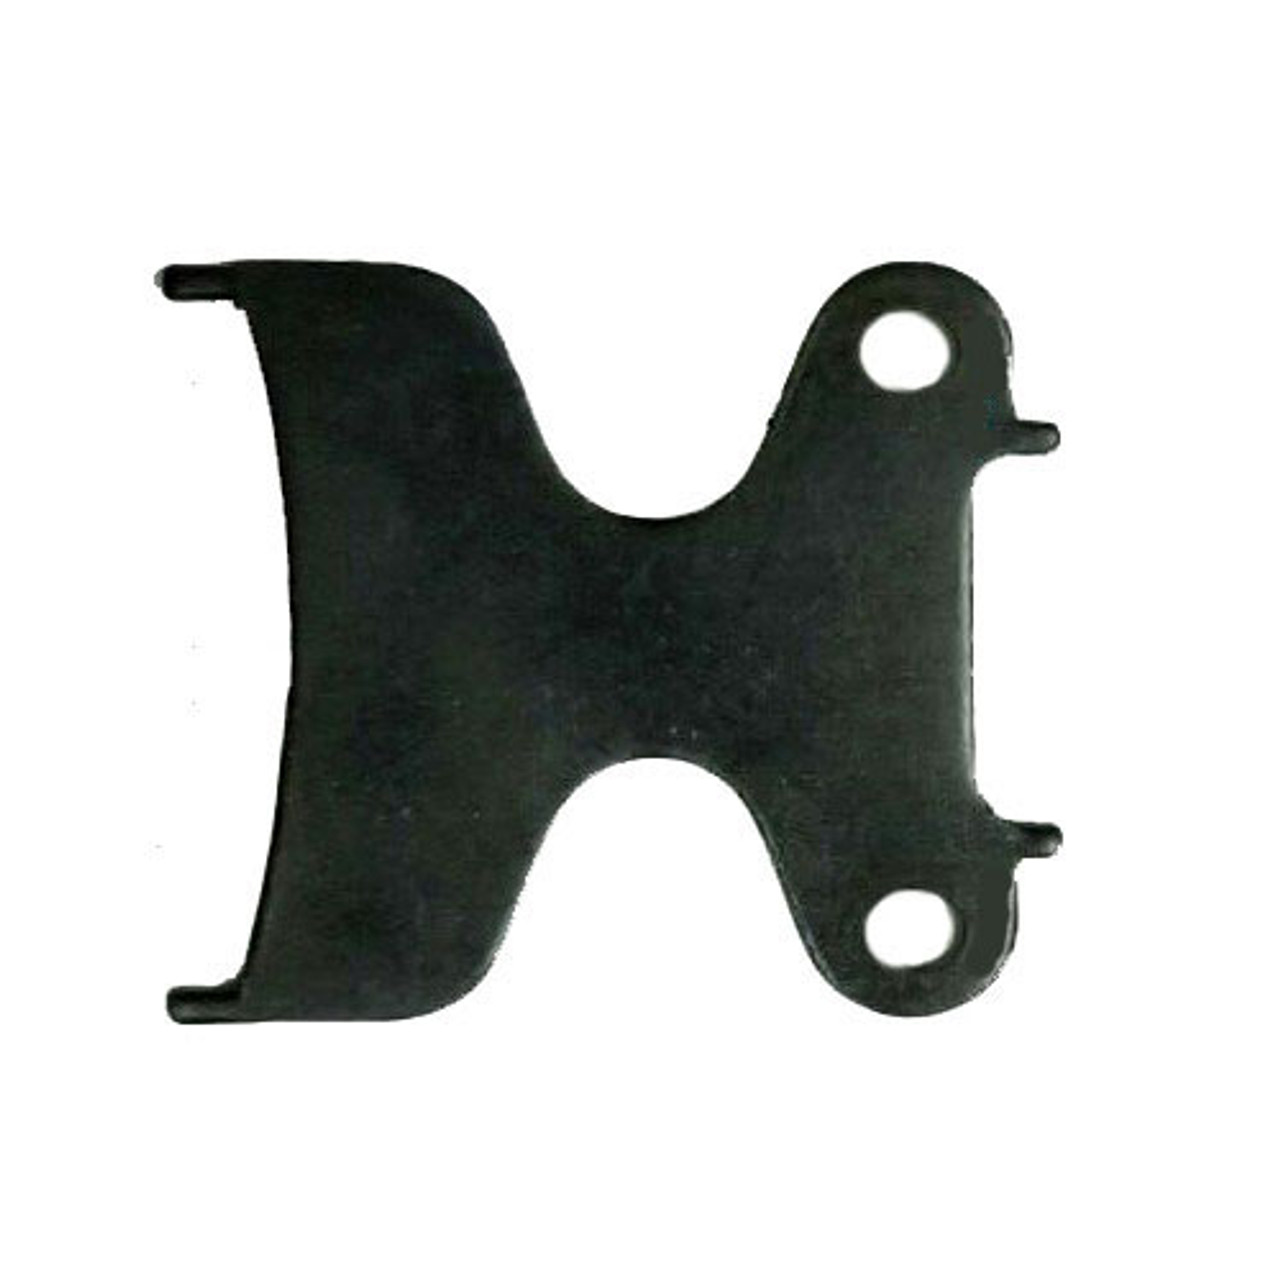 """Eastman Cardinal Spanner Wrench Large (5 1/4"""" to 7"""" blade)"""